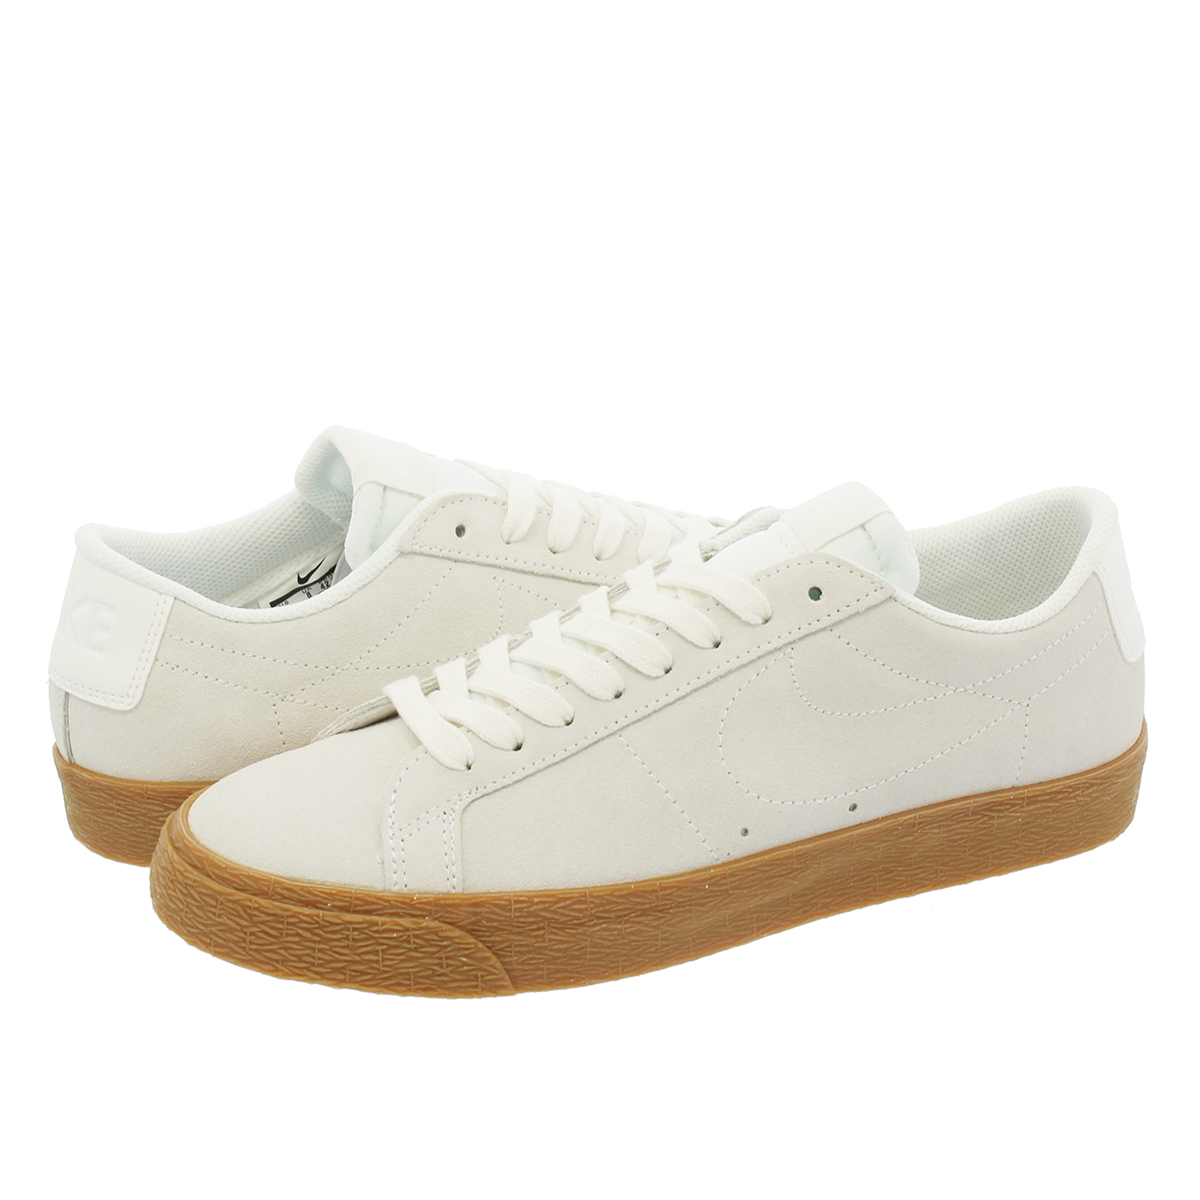 NIKE SB BLAZER ZOOM LOW ナイキ SB ブレザー ズーム ロー SUMMIT WHITE /GUM MEDIUM BROWN/BLACK 864347-100